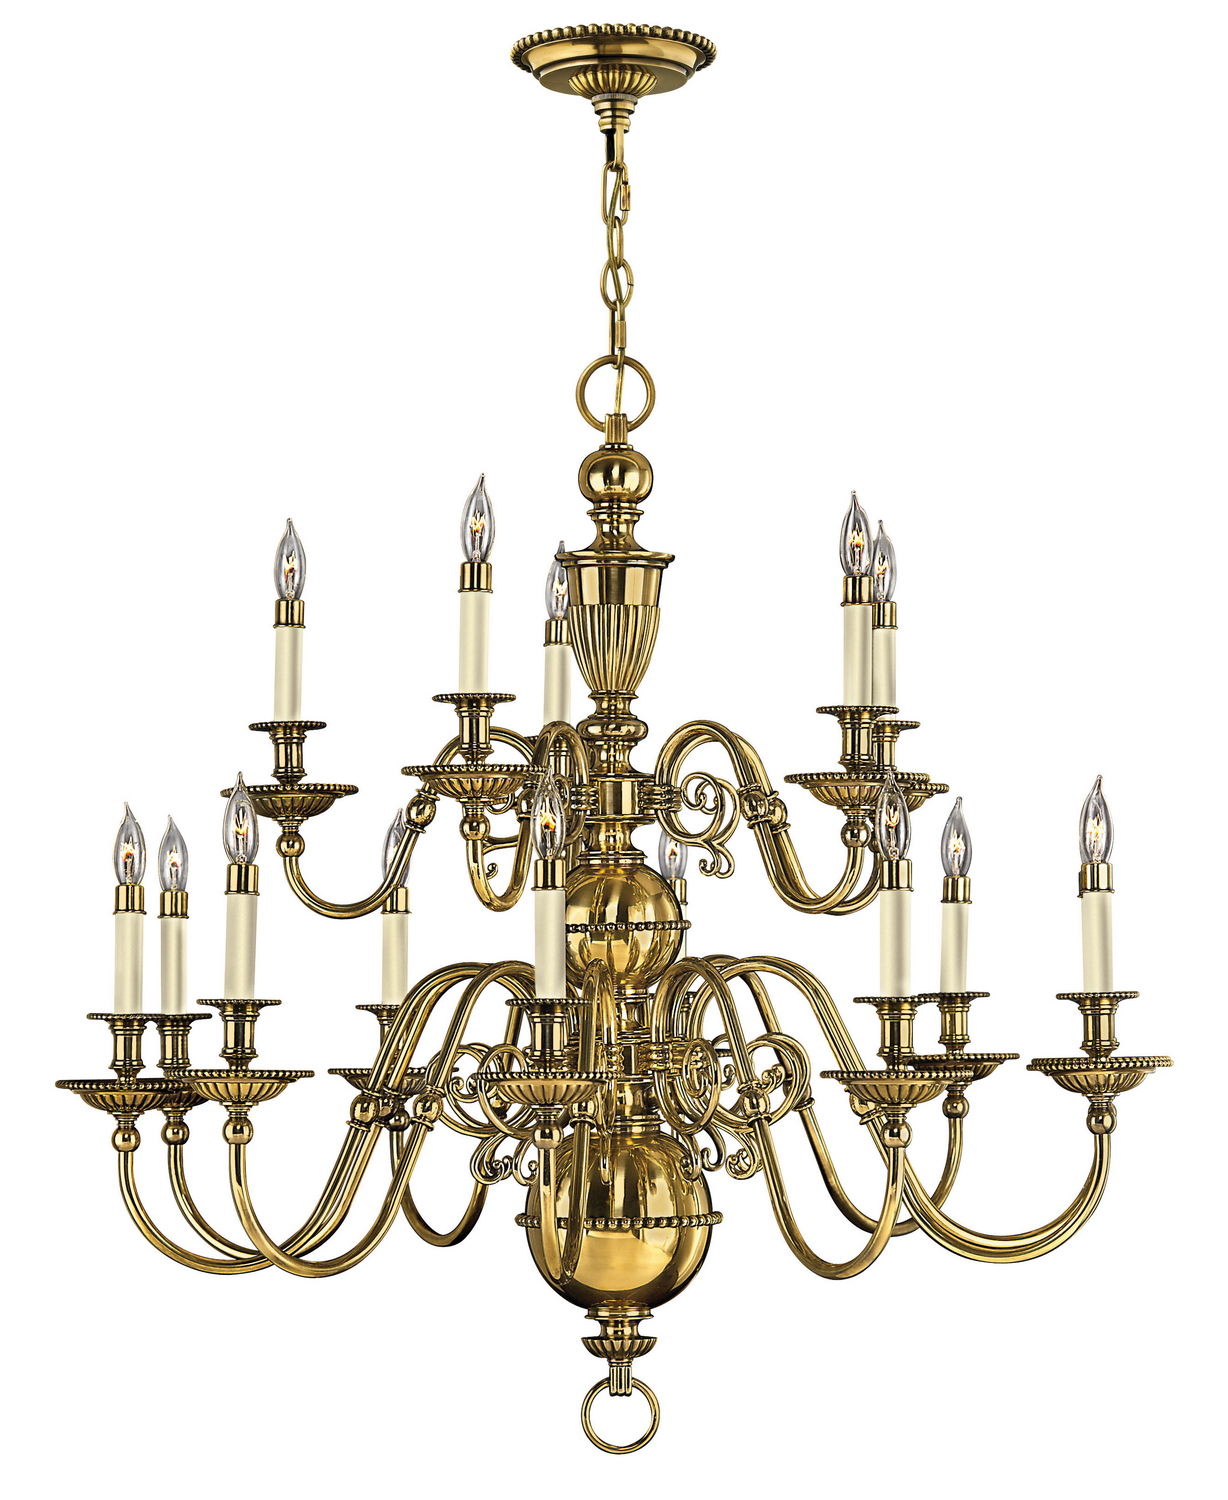 15 Light Foyer Pendant from the Cambridge collection by Hinkley 4417BB